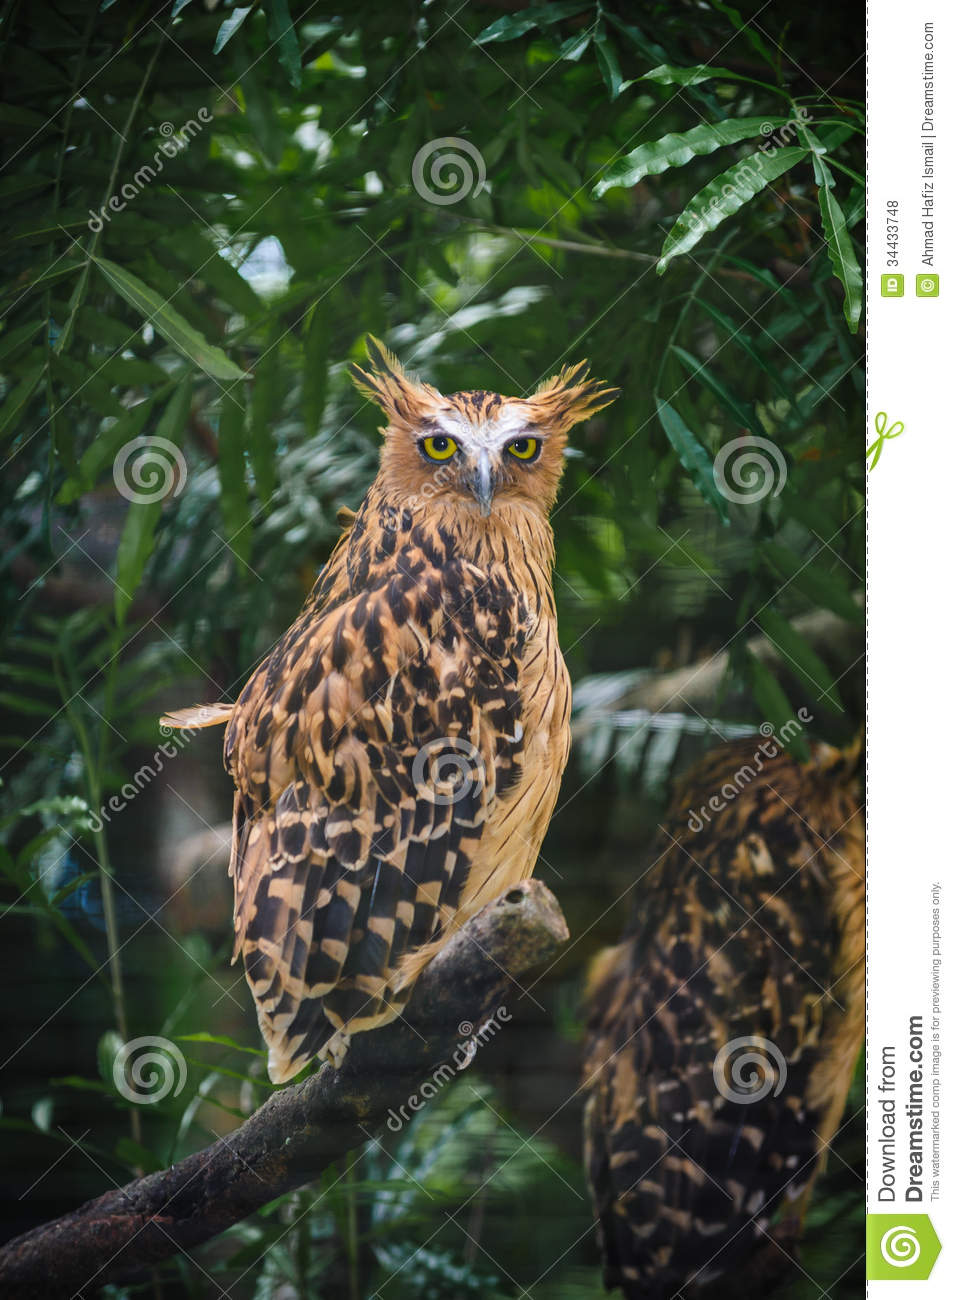 Malay Eagle Owl clipart #20, Download drawings